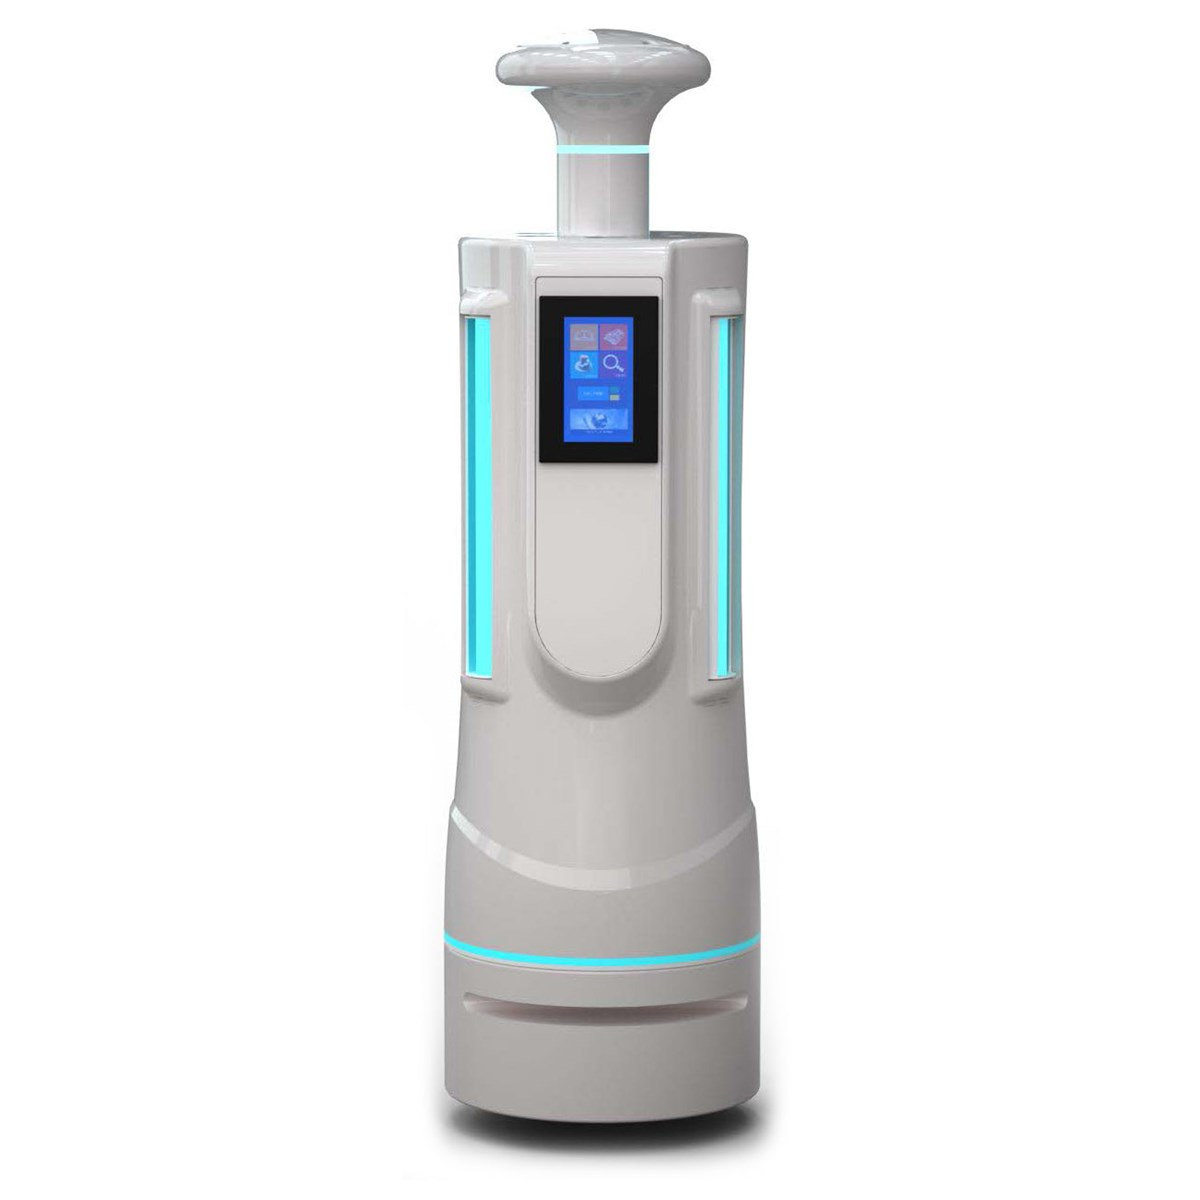 K3 AI intelligent disinfection purification robot